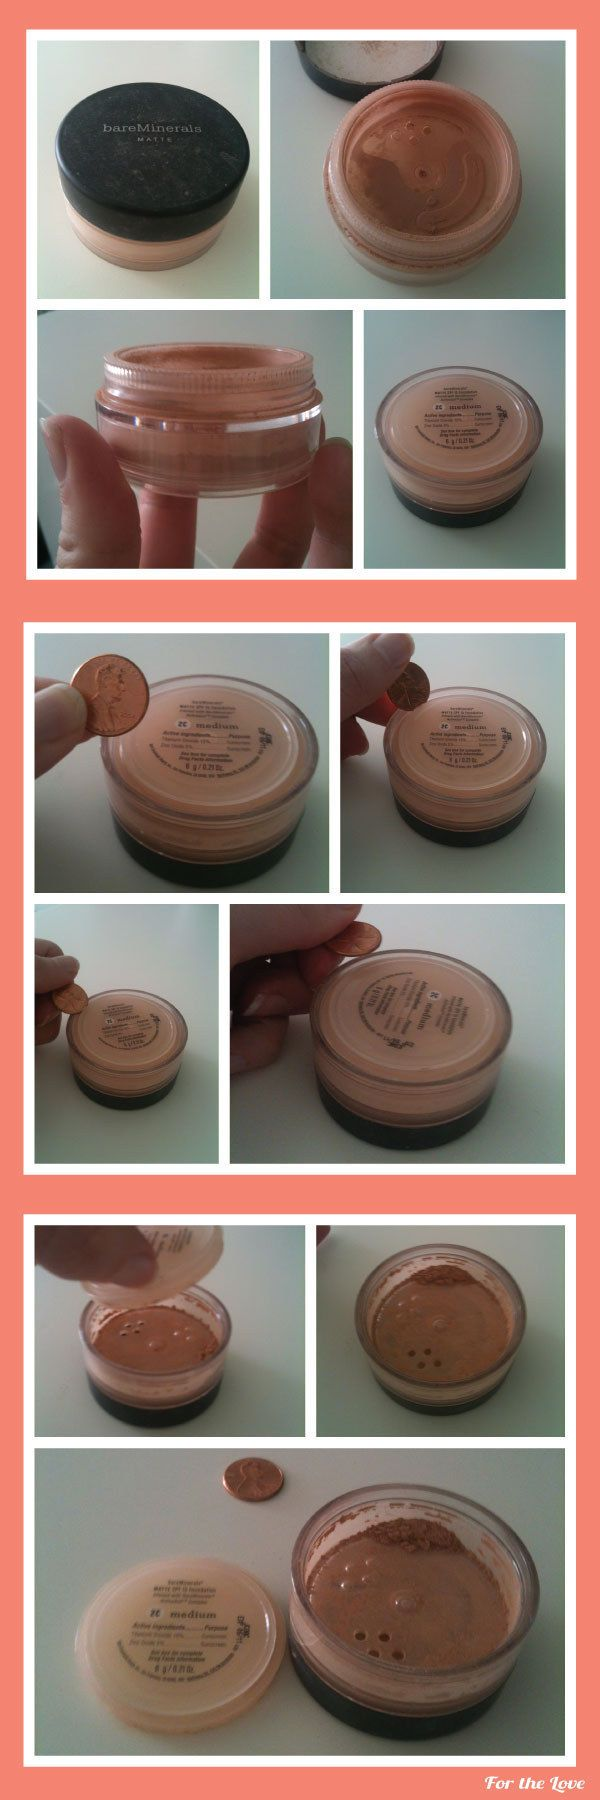 Use a penny to get every last bit out of your mineral makeup.